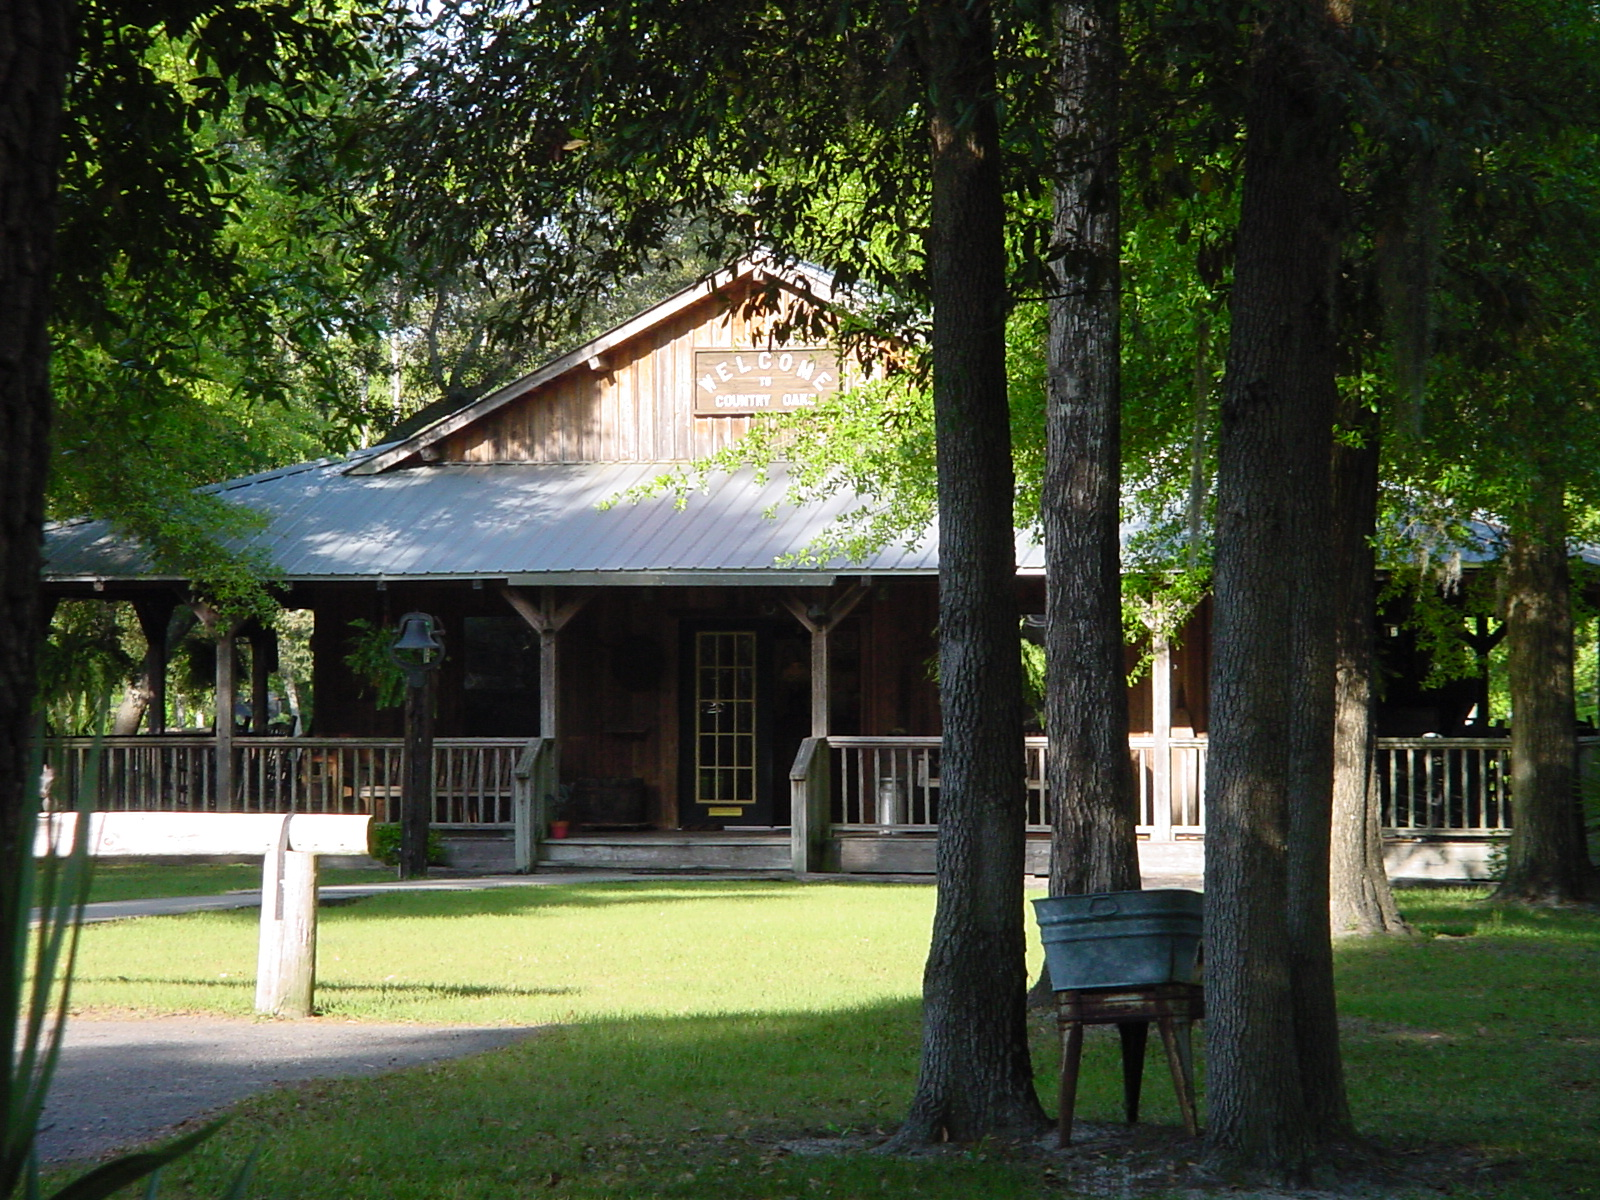 s of Country Oaks Campground